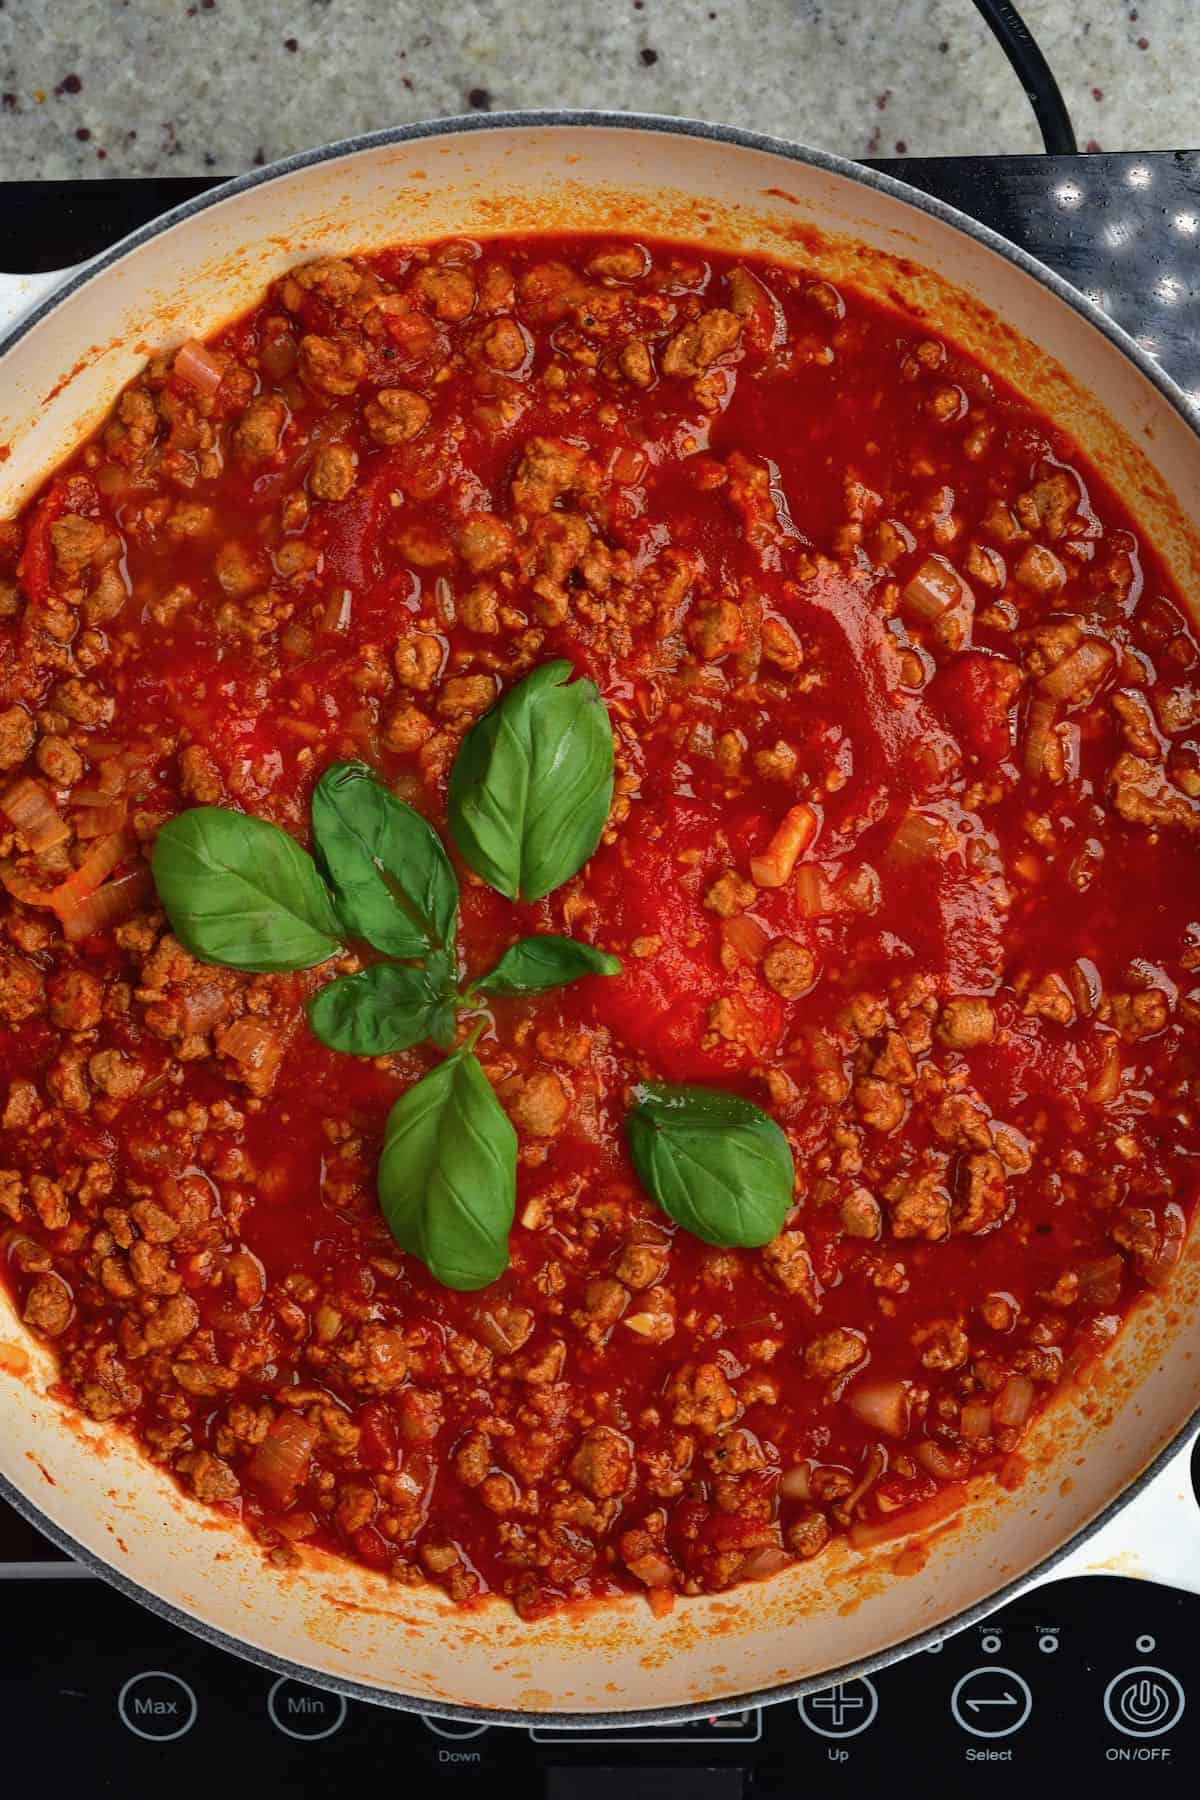 Vegan bolognese sauce in a large pan